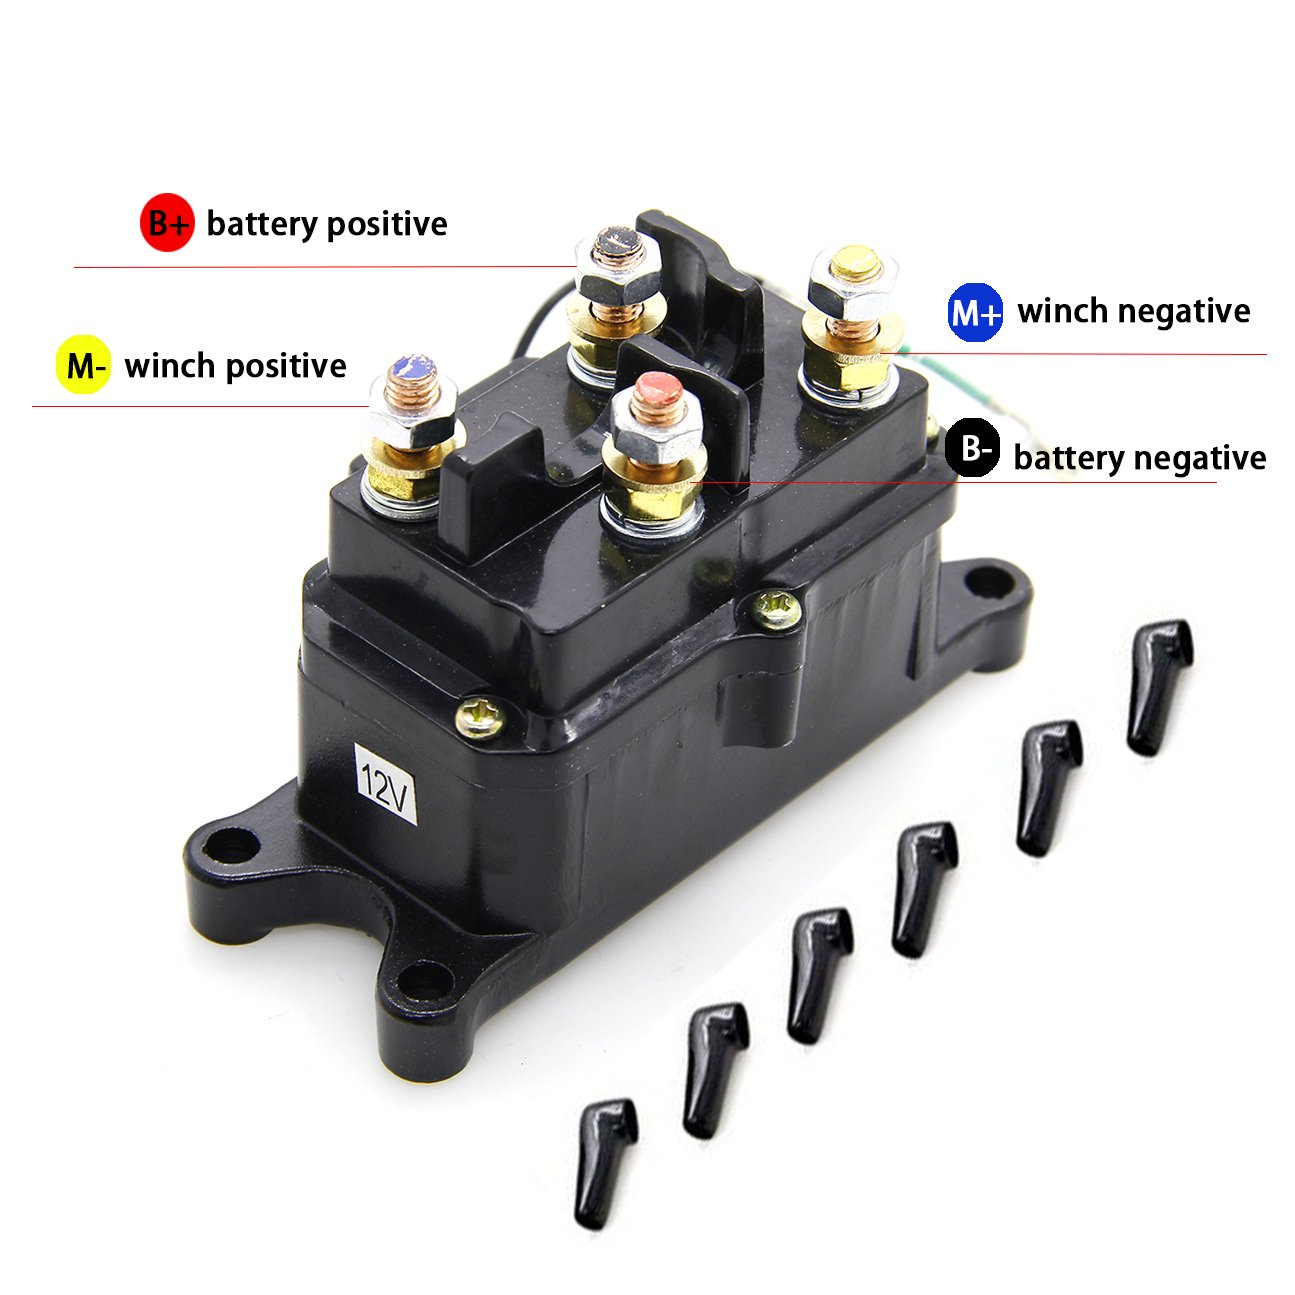 KONDUONE 12V 250A Winch Solenoid Relay Contactor Thumb Truck with 6 Protecting Caps for 4x4 Vehicles UTV ATV Winch Solenoid by Konduone